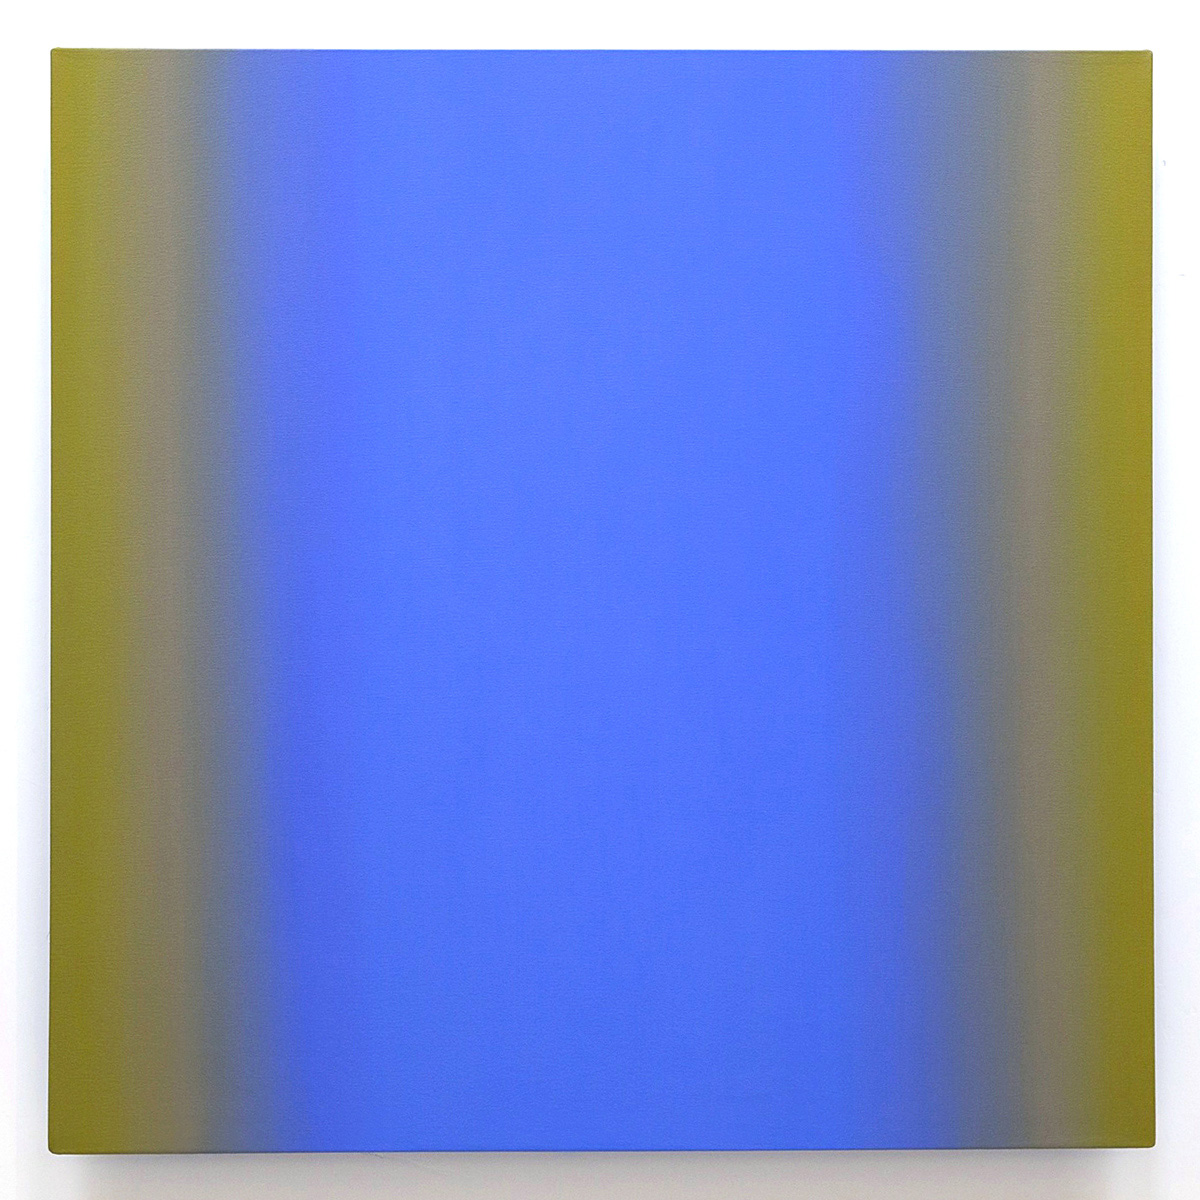 Yellow Violet 1-S4848 (Blue Violet), Interplay Series, 2013, oil on canvas on custom beveled stretcher, 48 x 48 in. (122 x 122 cm.)